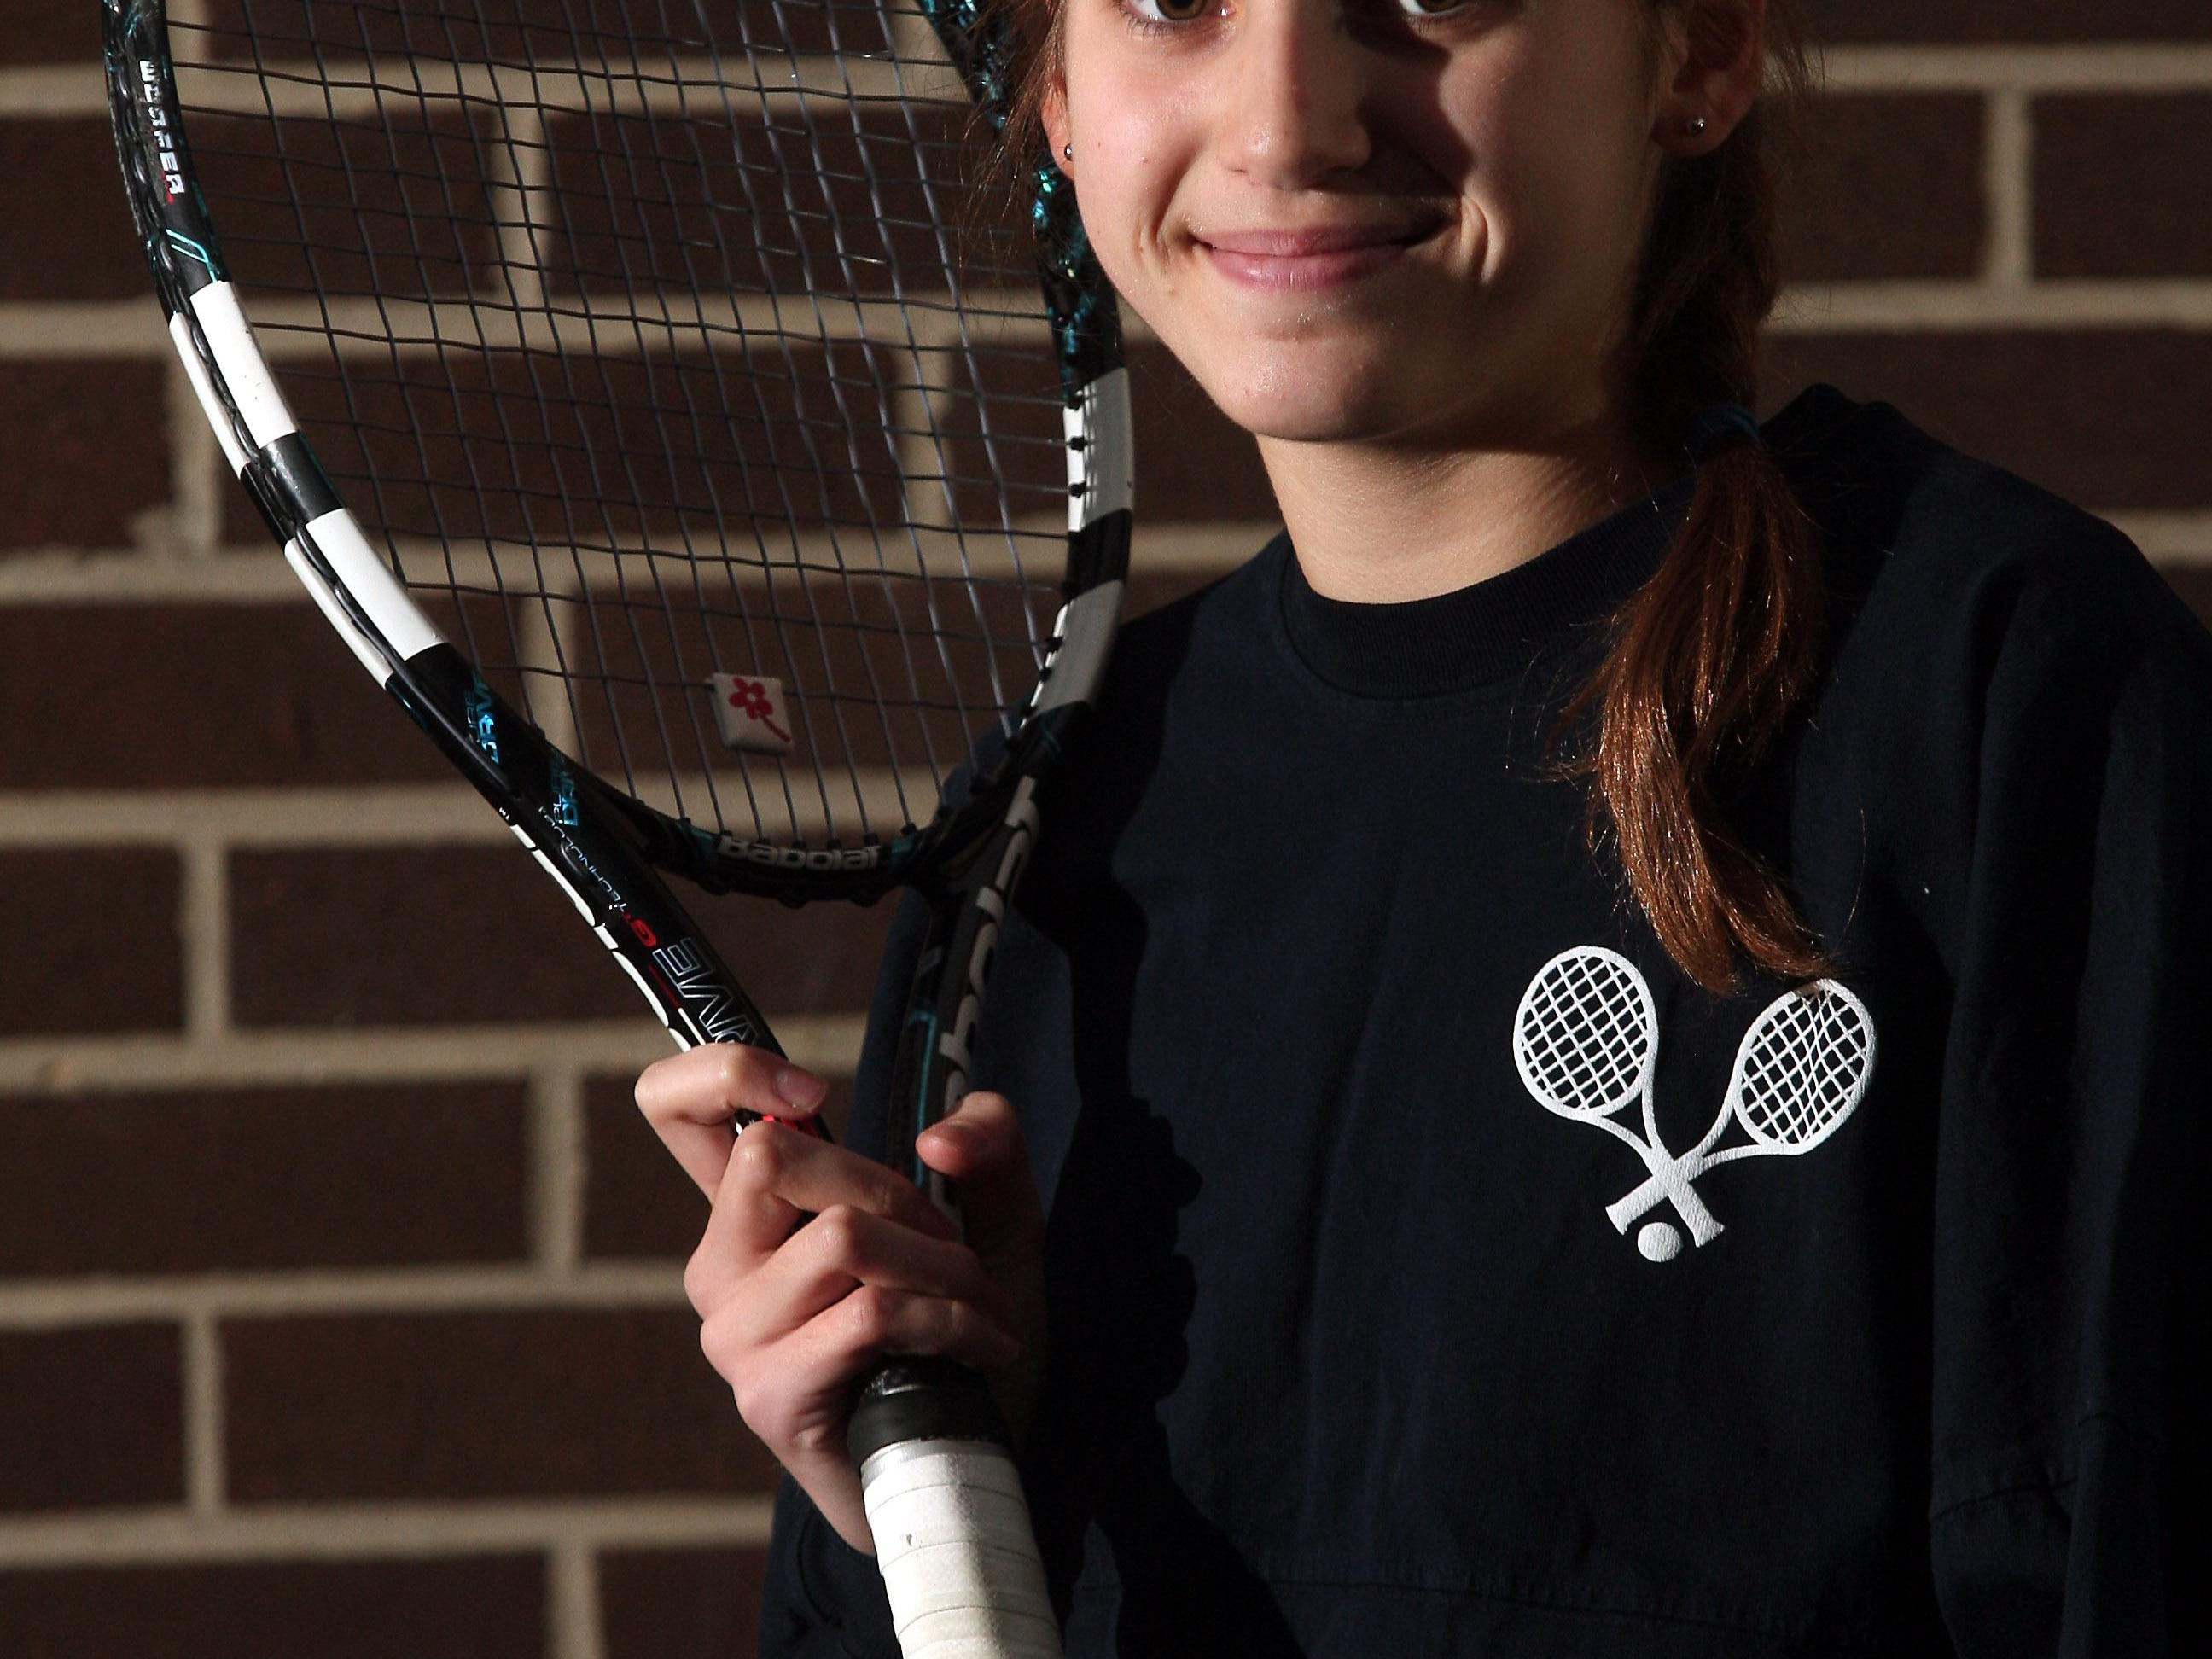 Chatham sophomore Scarlett Blydenburgh posted a 20-3 record while winning her second straight Morris County Tournament first singles title and reaching the Round of 16 at the NJSIAA singles tournament.